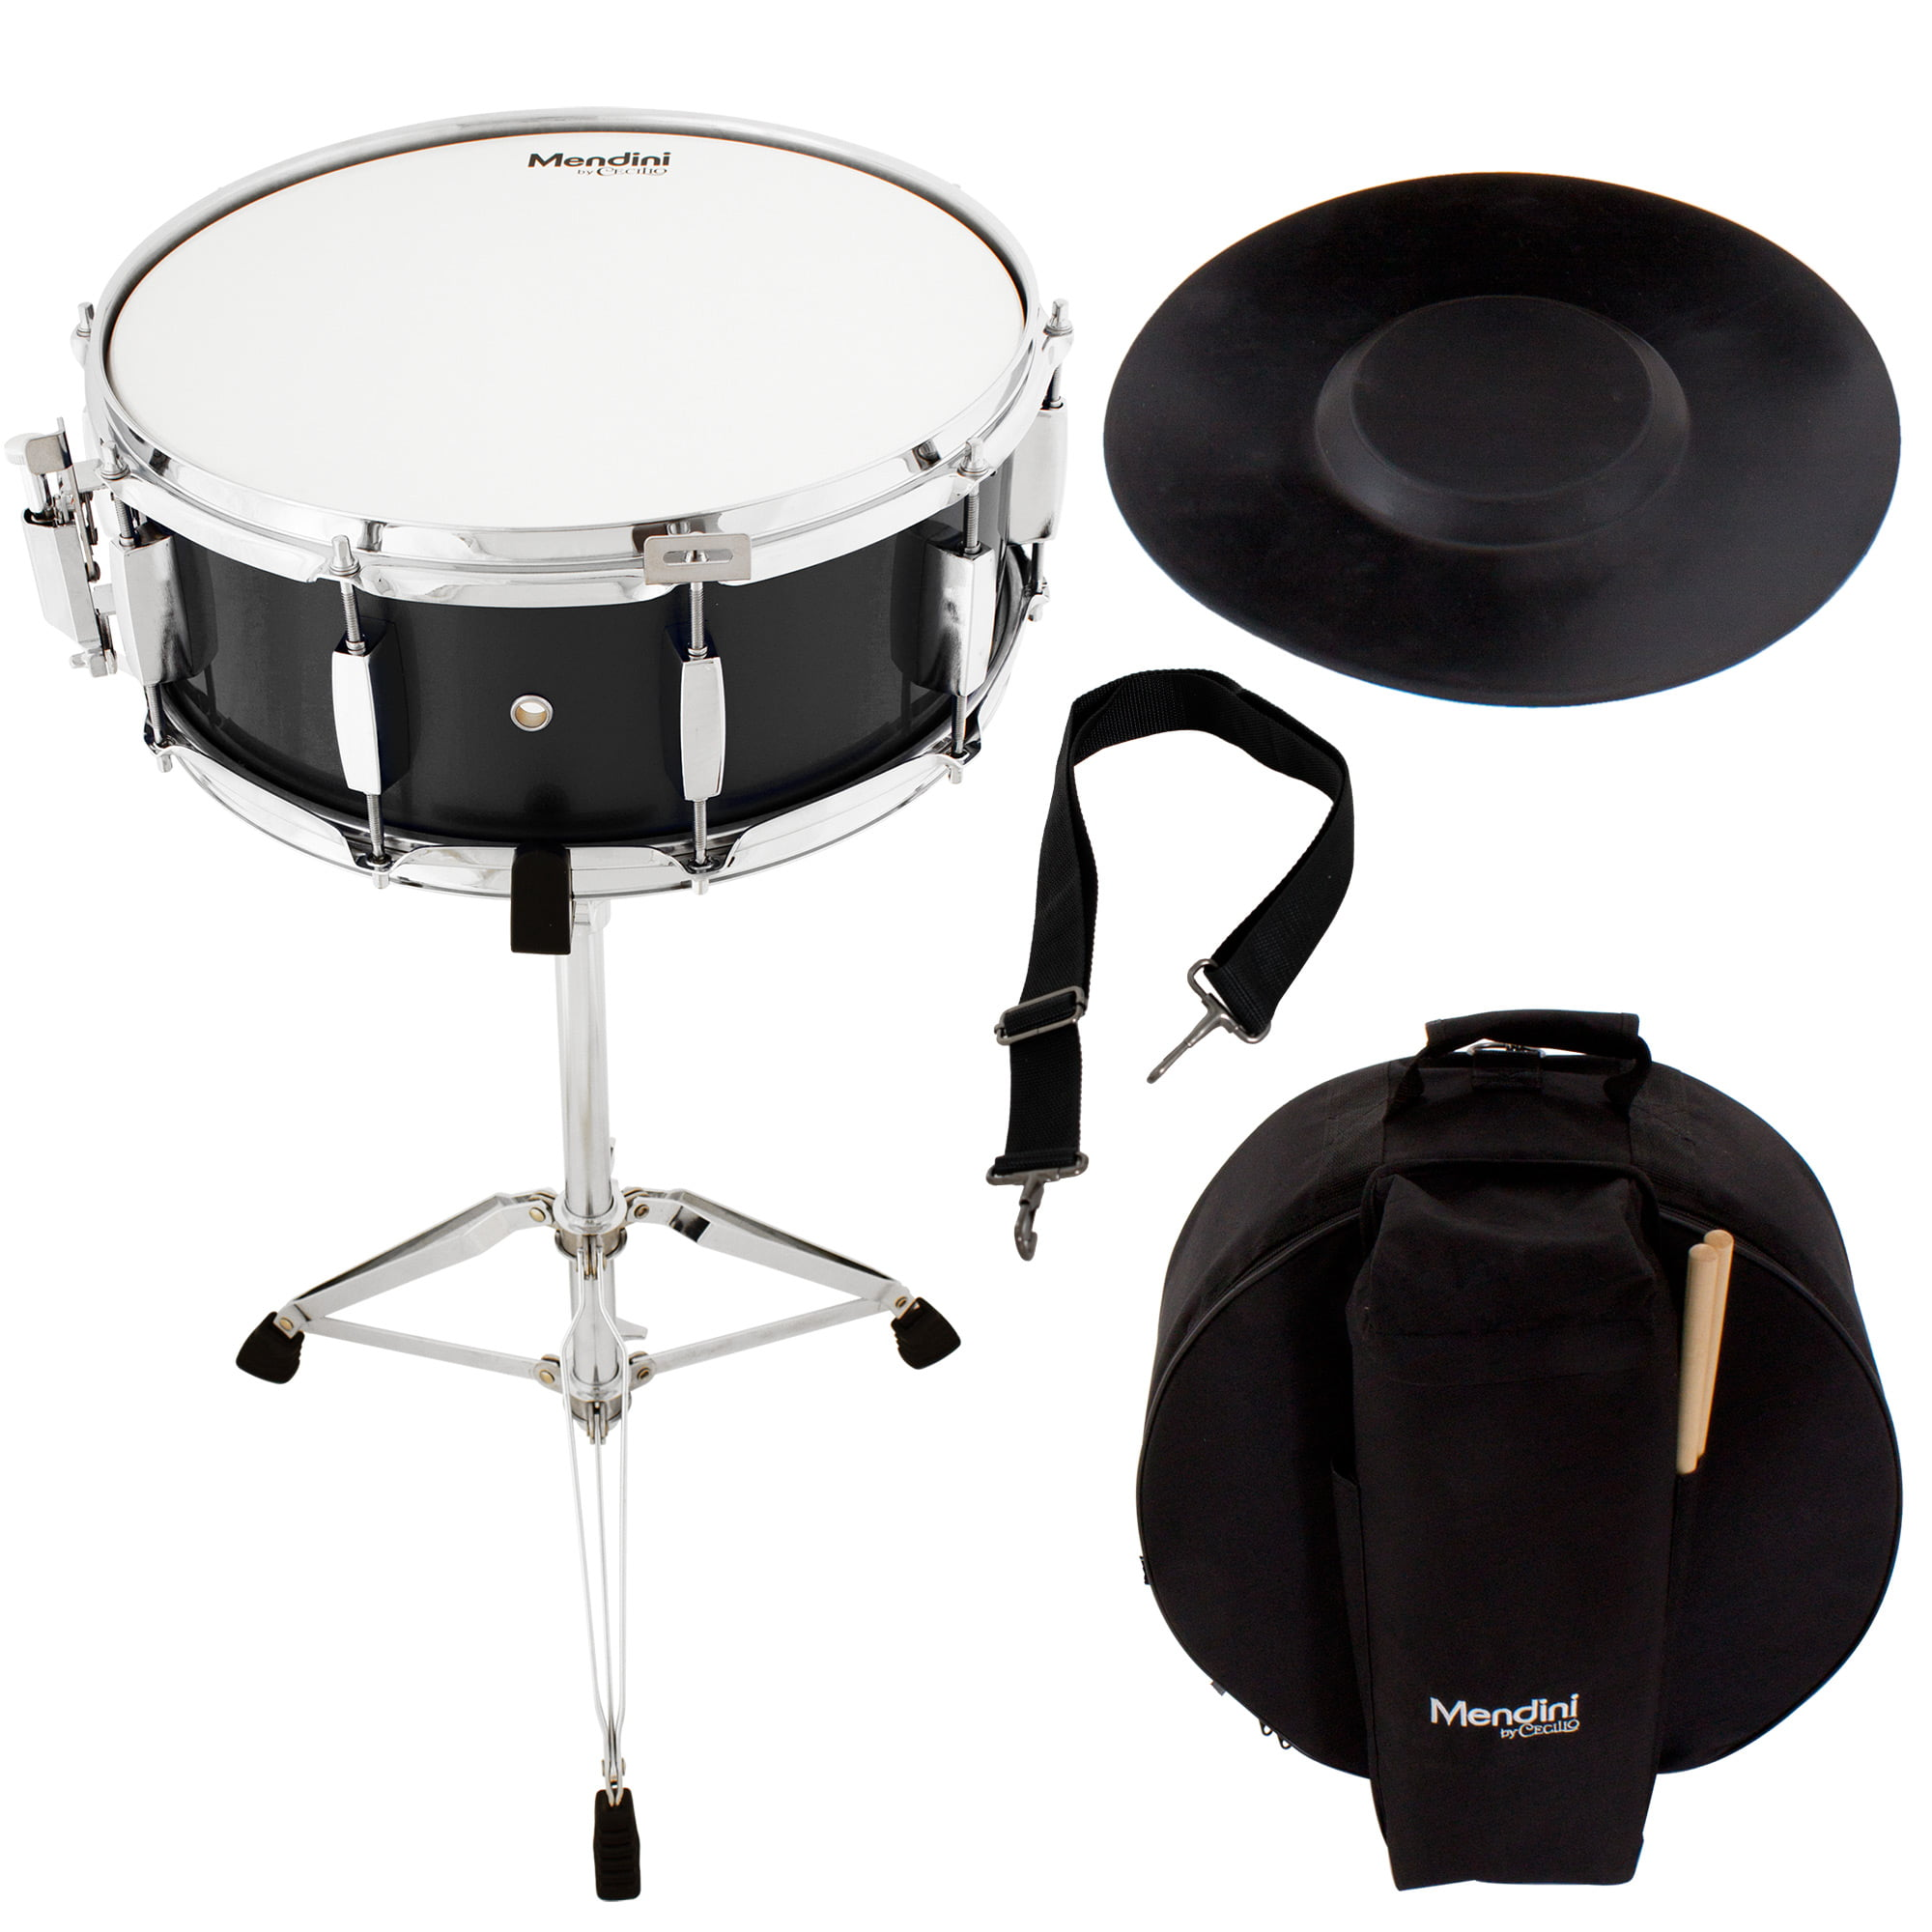 Mendini by Cecilio Student Snare Drum Set with Gig Bag, Sticks, Stand and Practice Pad Kit, Black by Cecilio Musical Instruments